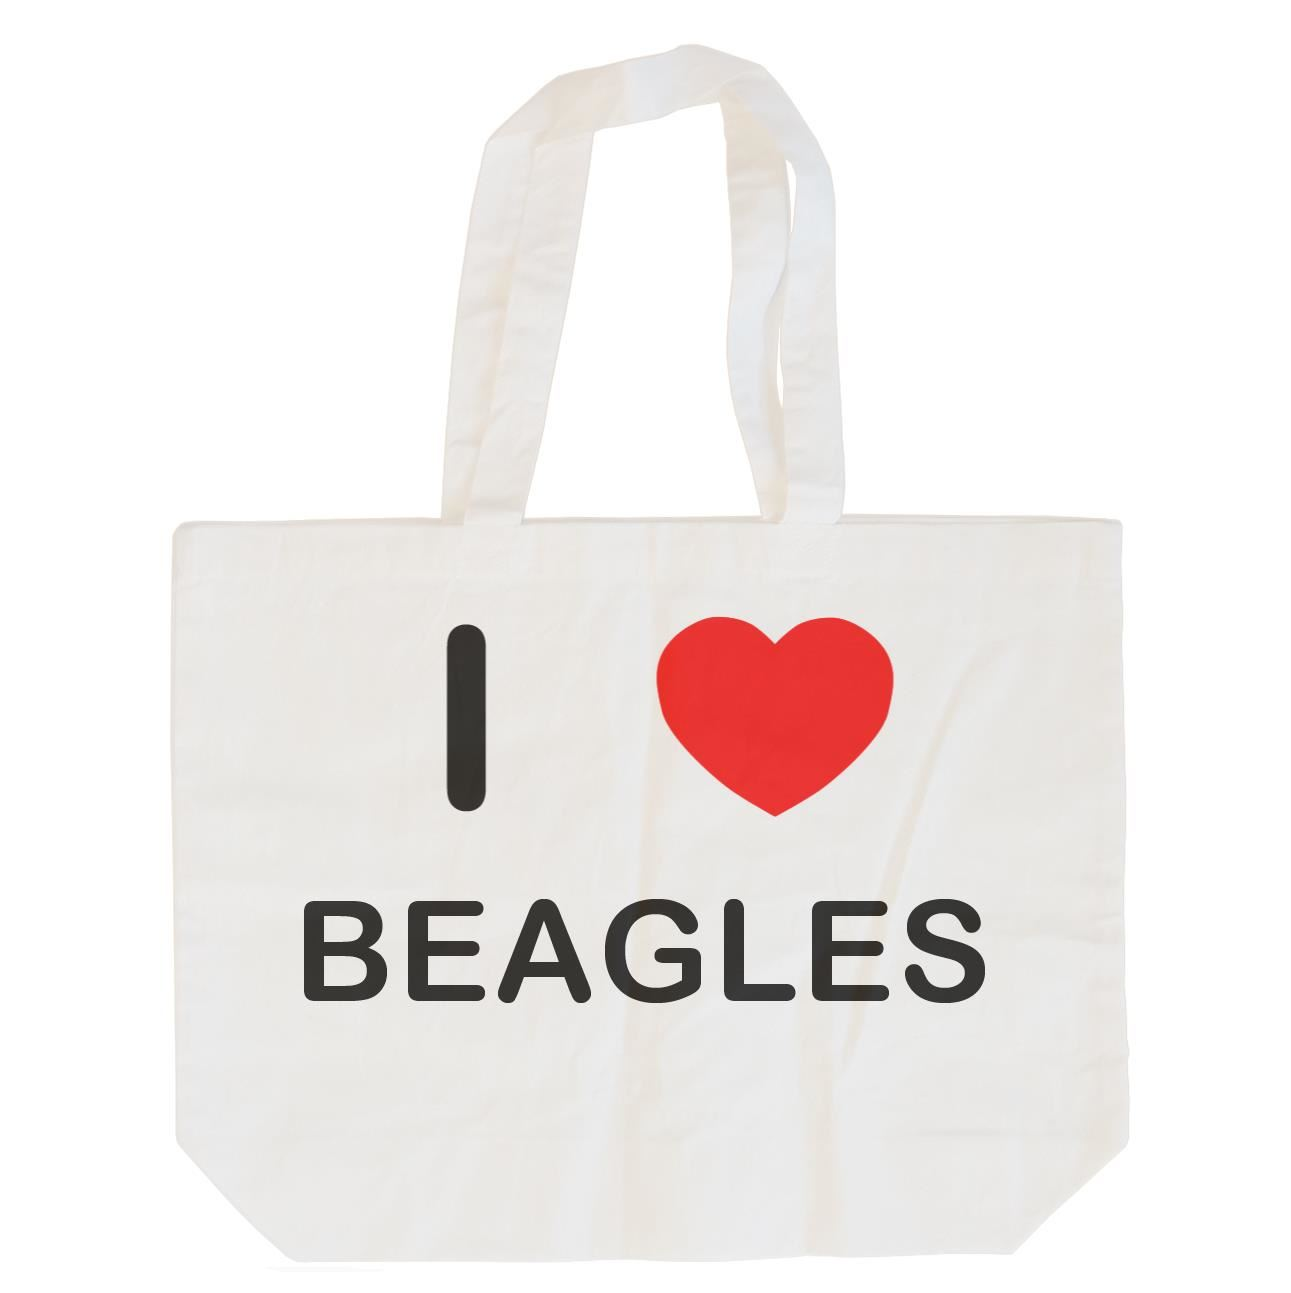 I Love Beagles - Cotton Bag | Size choice Tote, Shopper or Sling